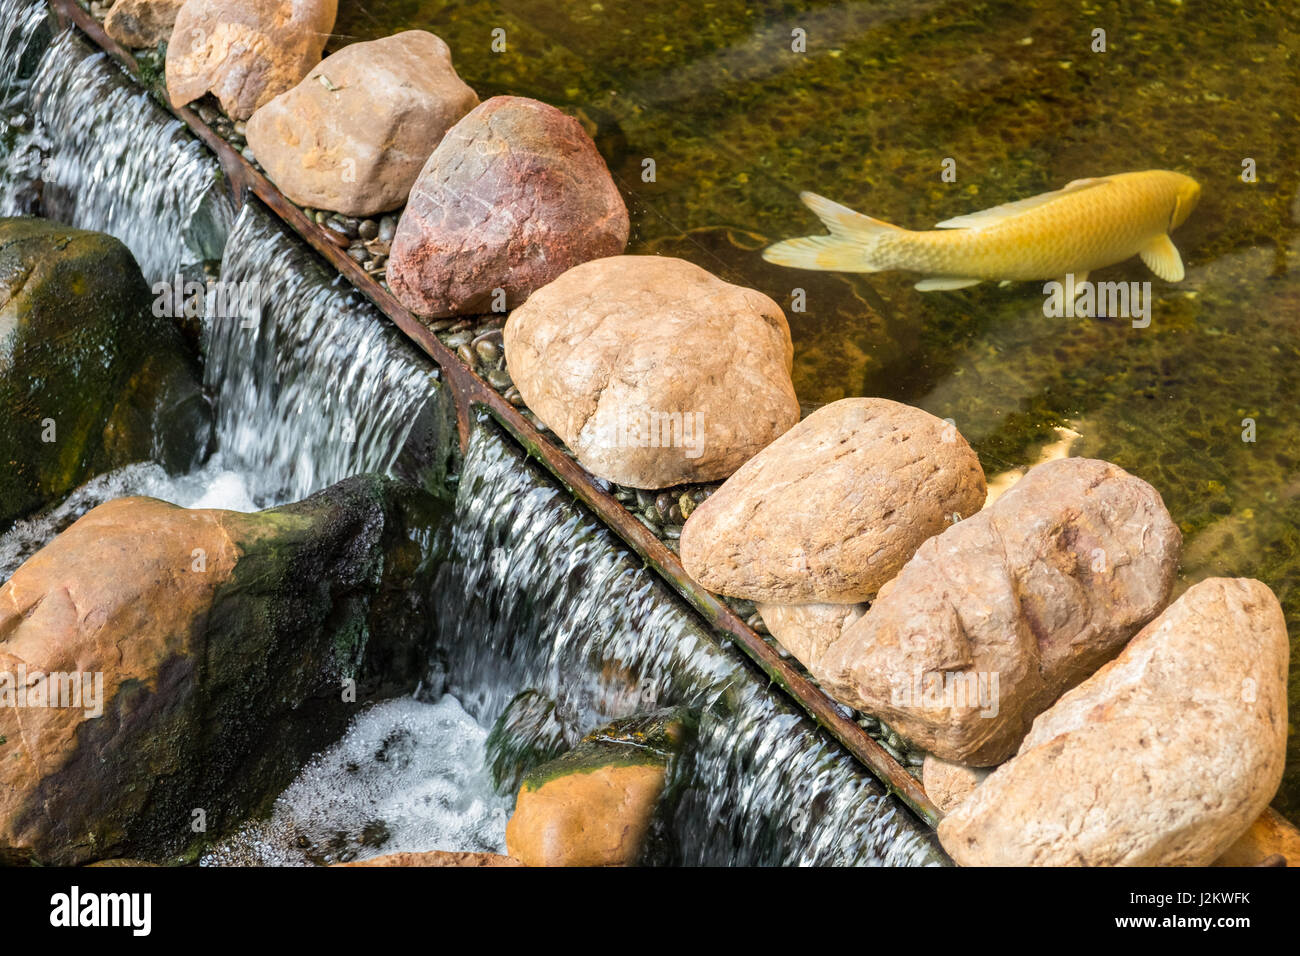 Koi carp in a lake stock photos koi carp in a lake stock for Stone koi pond